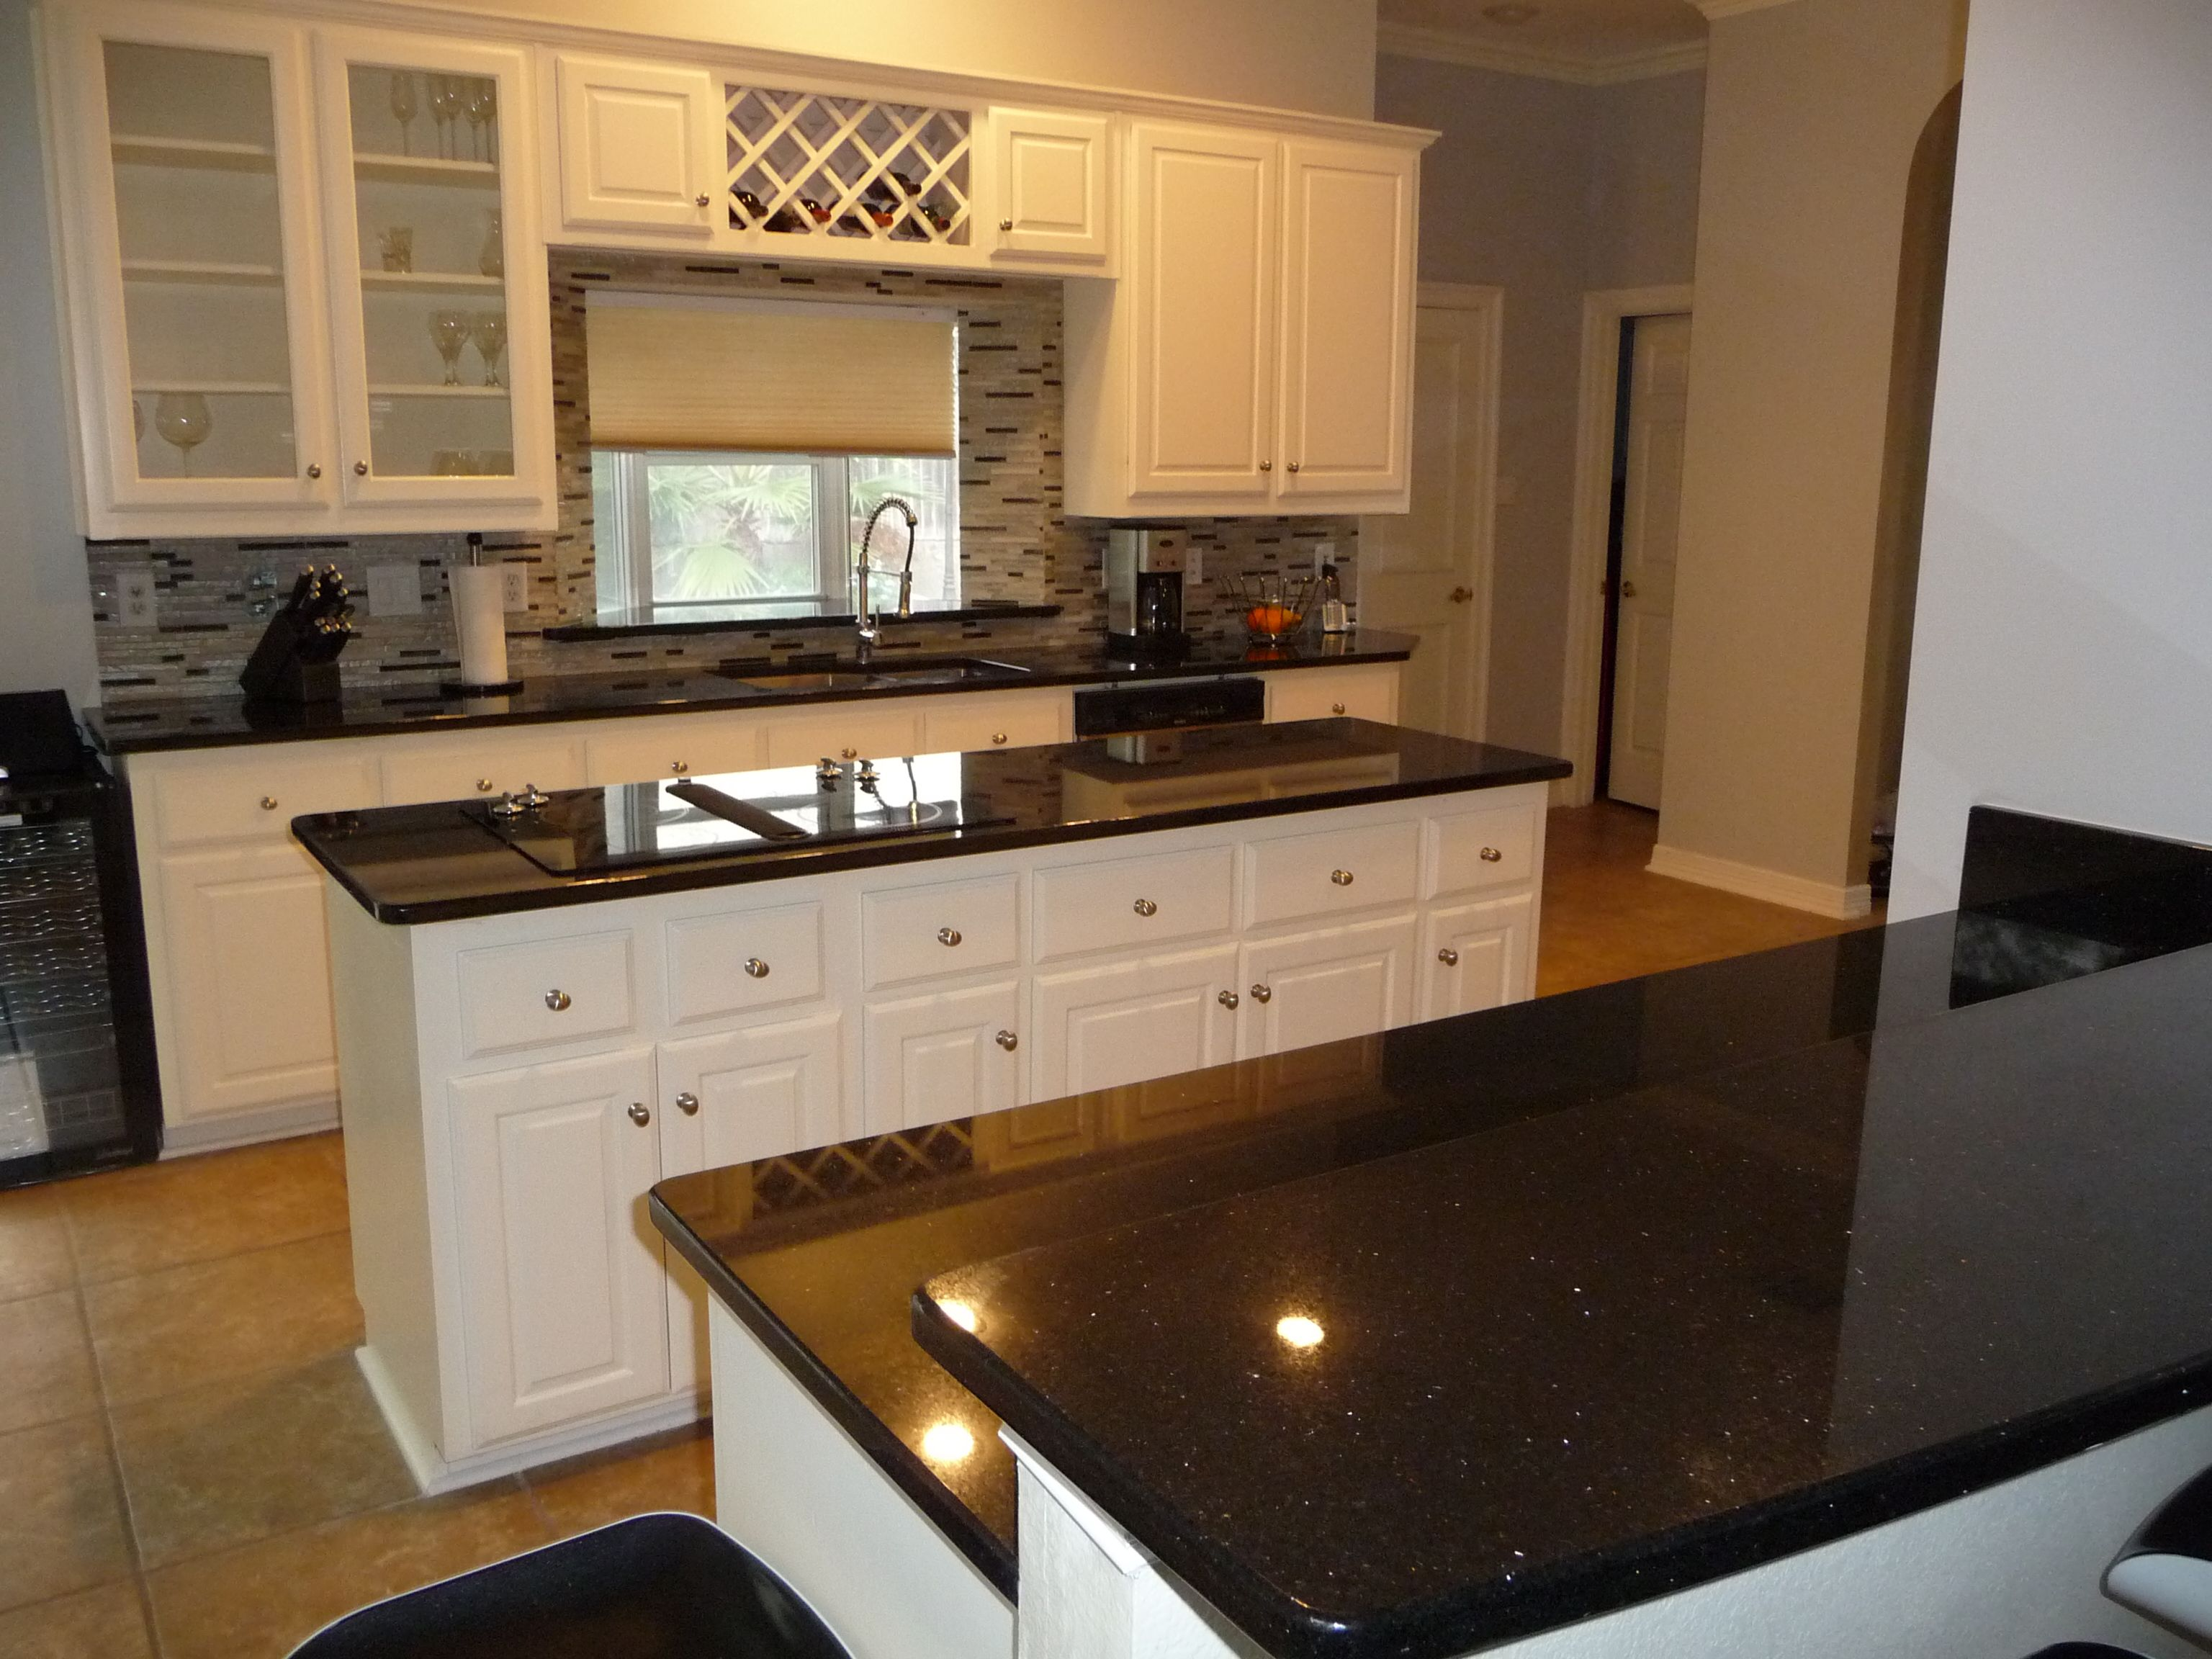 ultra granite countertop calgary trend kitchens counters resolutions kitchen hd h countertops design cosmic w home x black